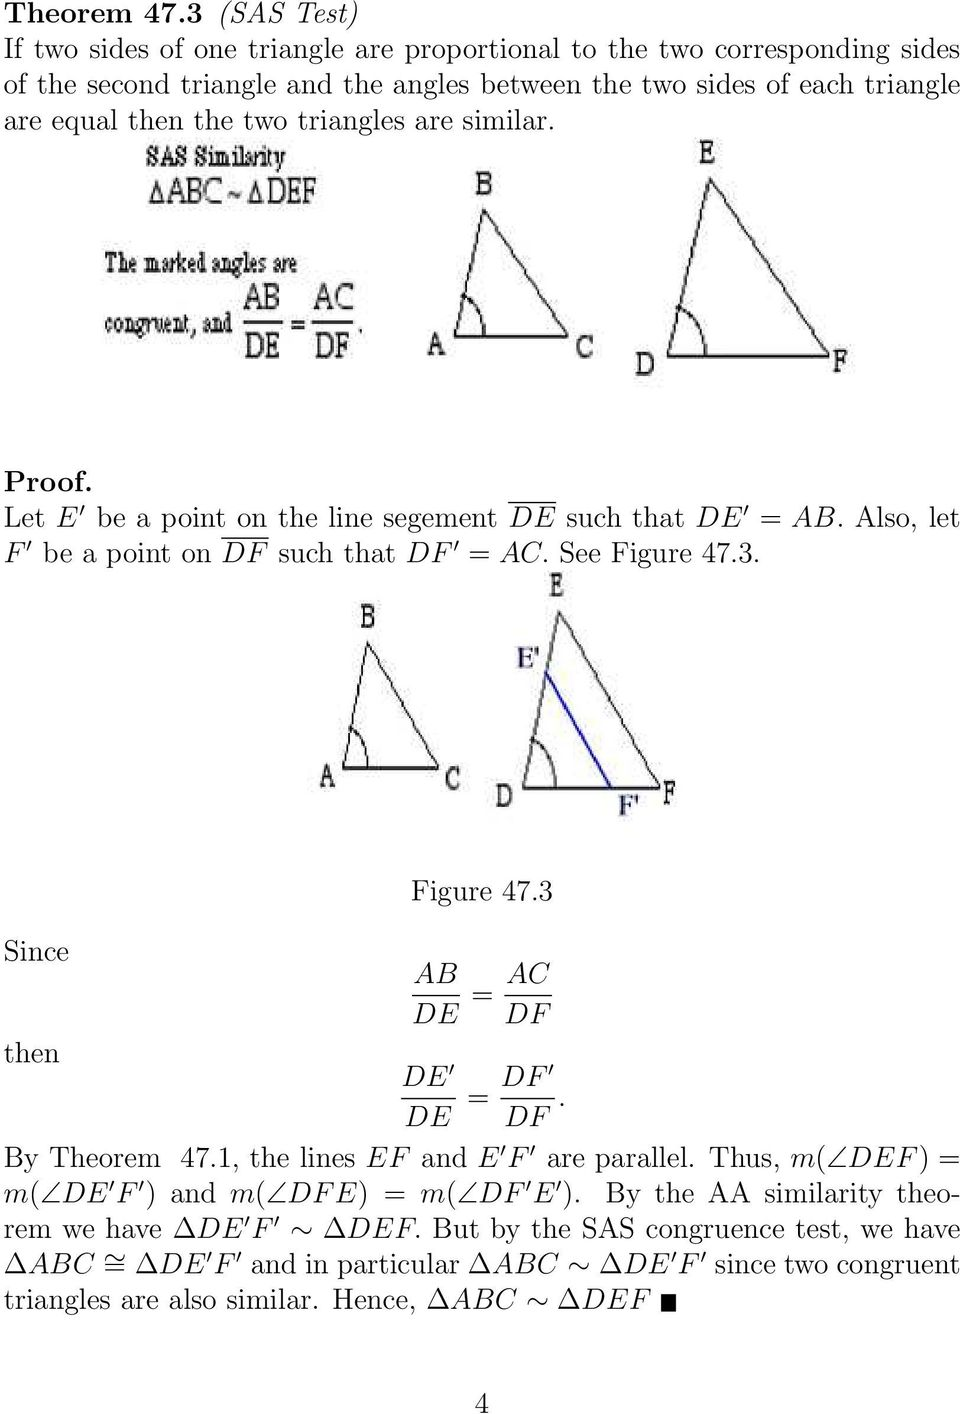 equal then the two triangles are similar. Proof. Let E be a point on the line segement DE such that DE = AB. Also, let F be a point on DF such that DF = AC. See Figure 47.3.